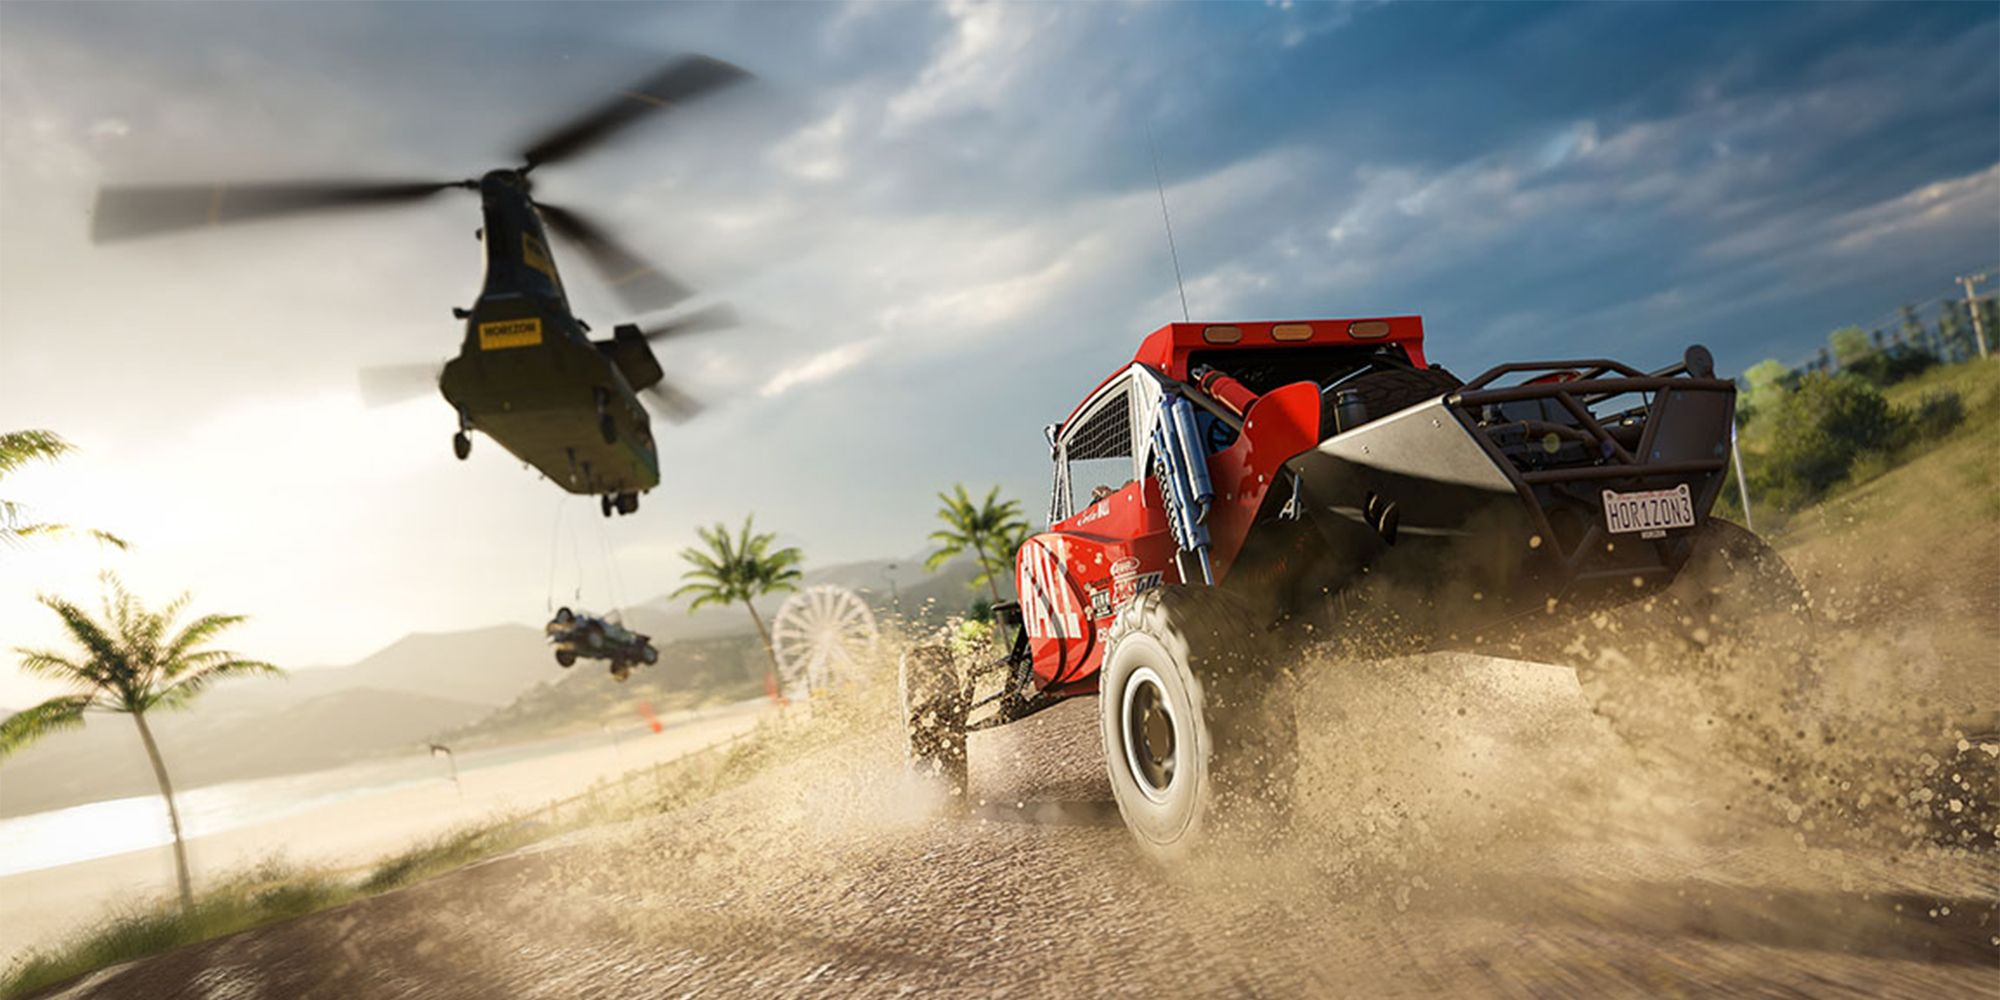 """<p><strong data-redactor-tag=""""strong""""><em data-redactor-tag=""""em"""">$59<a href=""""https://www.amazon.com/Forza-Horizon-3-Xbox-One/dp/B01GW3LRD2/?th=1&tag=bp_links-20"""" target=""""_blank"""" class=""""slide-buy--button"""" data-tracking-id=""""recirc-text-link"""">BUY NOW</a></em></strong></p><p>This racing game has a rich selection of cars, gorgeous graphics, and amazing open worlds to drive through. It's a great racing game to introduce to your child. The sheer amount of detail that was put into the game is awe-inducing.<span class=""""redactor-invisible-space"""" data-verified=""""redactor"""" data-redactor-tag=""""span"""" data-redactor-class=""""redactor-invisible-space"""">Even if you andyour child aren'tfans of racing games,<em data-redactor-tag=""""em"""">Forza Horizon 3</em>has the power to convert you.</span></p><p><span class=""""redactor-invisible-space"""" data-verified=""""redactor"""" data-redactor-tag=""""span"""" data-redactor-class=""""redactor-invisible-space""""><strong data-verified=""""redactor"""" data-redactor-tag=""""strong"""">More:</strong><span class=""""redactor-invisible-space"""" data-verified=""""redactor"""" data-redactor-tag=""""span"""" data-redactor-class=""""redactor-invisible-space""""><a href=""""http://www.bestproducts.com/tech/apps/news/g1837/best-educational-apps-for-kids/"""" data-tracking-id=""""recirc-text-link"""">The Best Education Apps That Make Learning Fun</a></span><br></span></p>"""